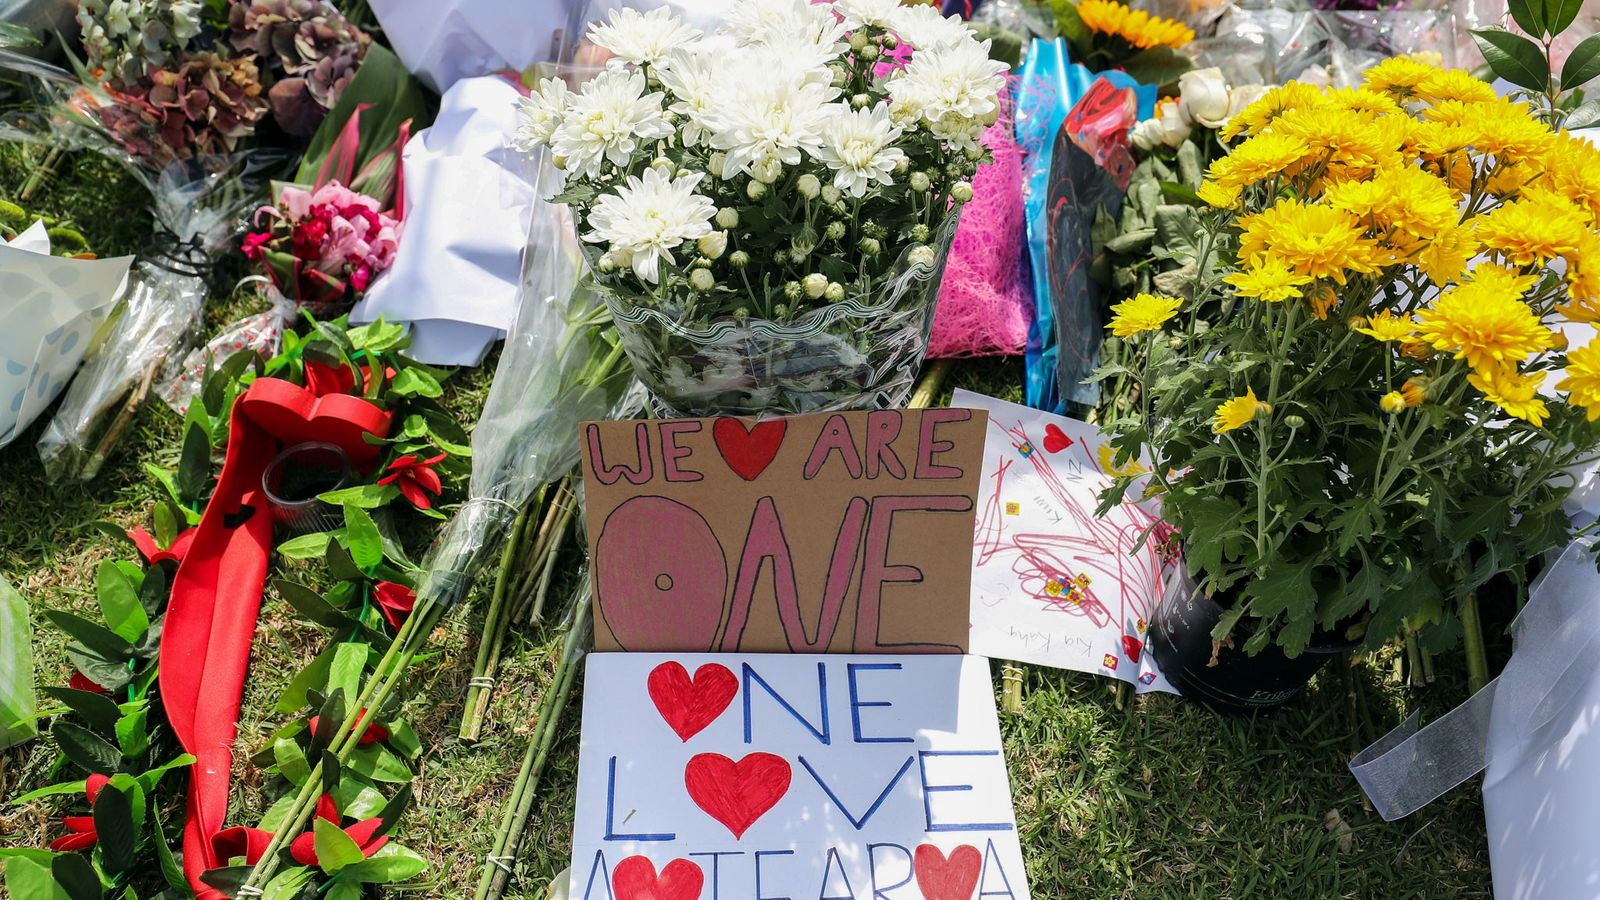 Flowers and words from mourners represent an outpouring of love and unity at Masjid Umar mosque ...